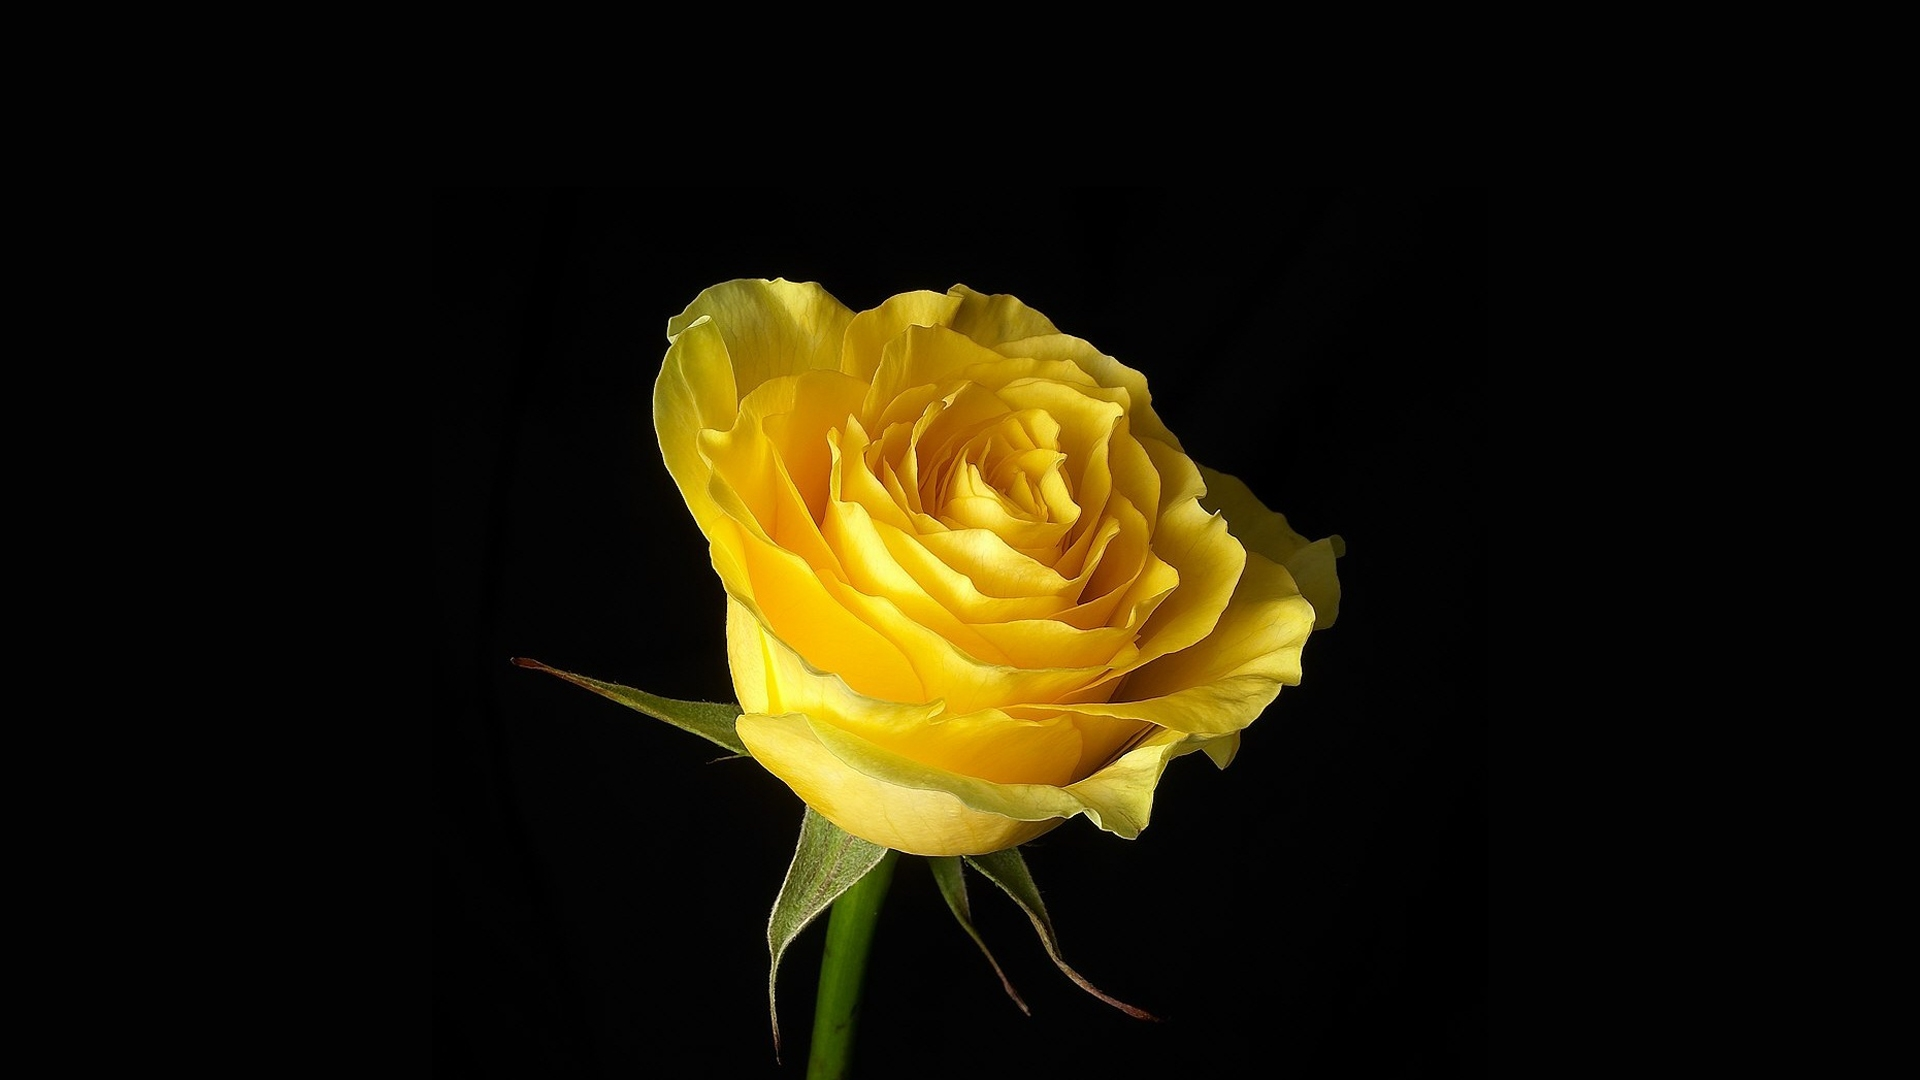 Yellow Rose On Black Background Hd Wallpaper